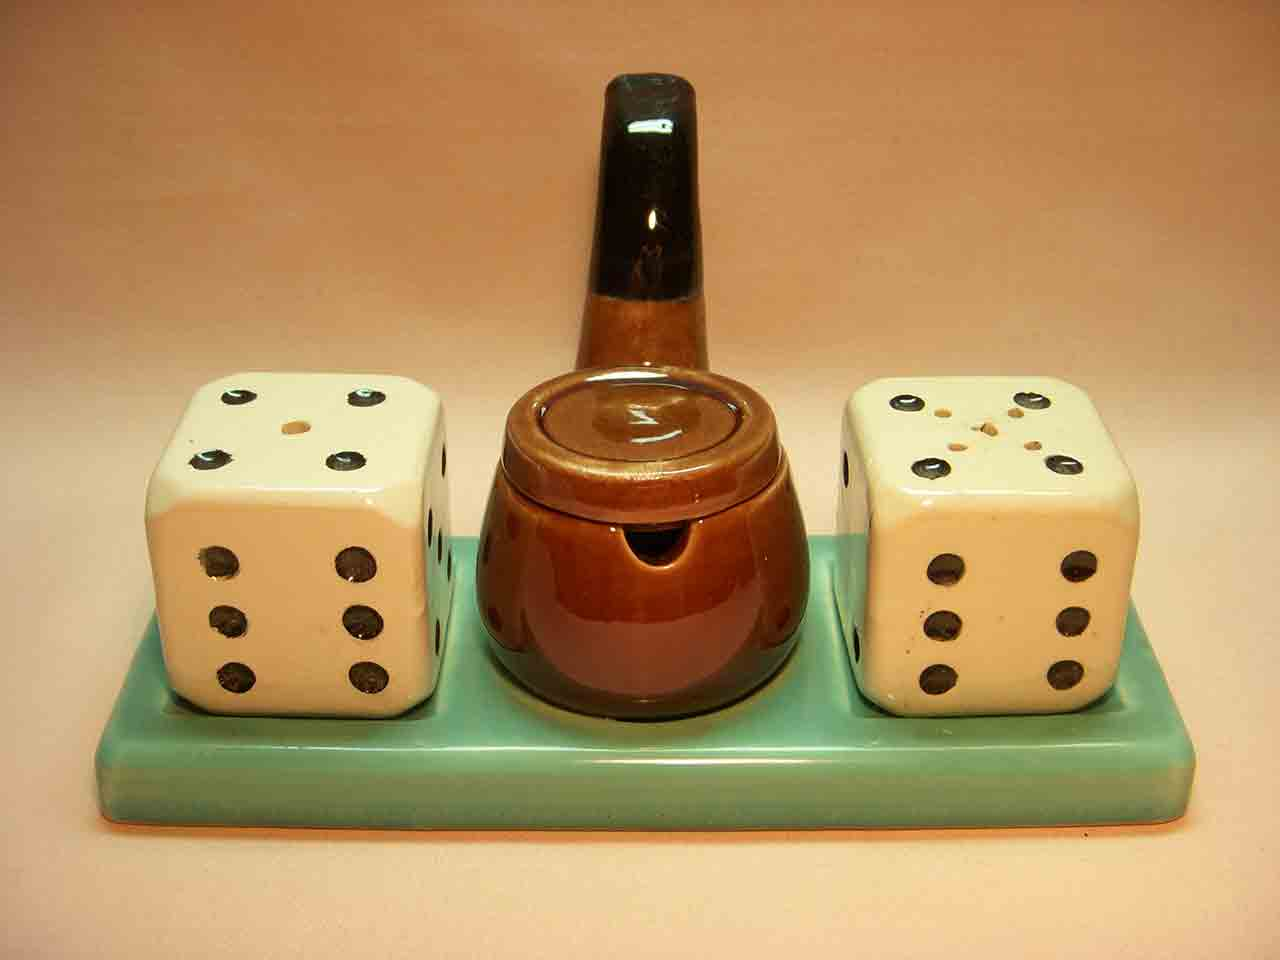 Pipe and dice condiment set salt and pepper shaker